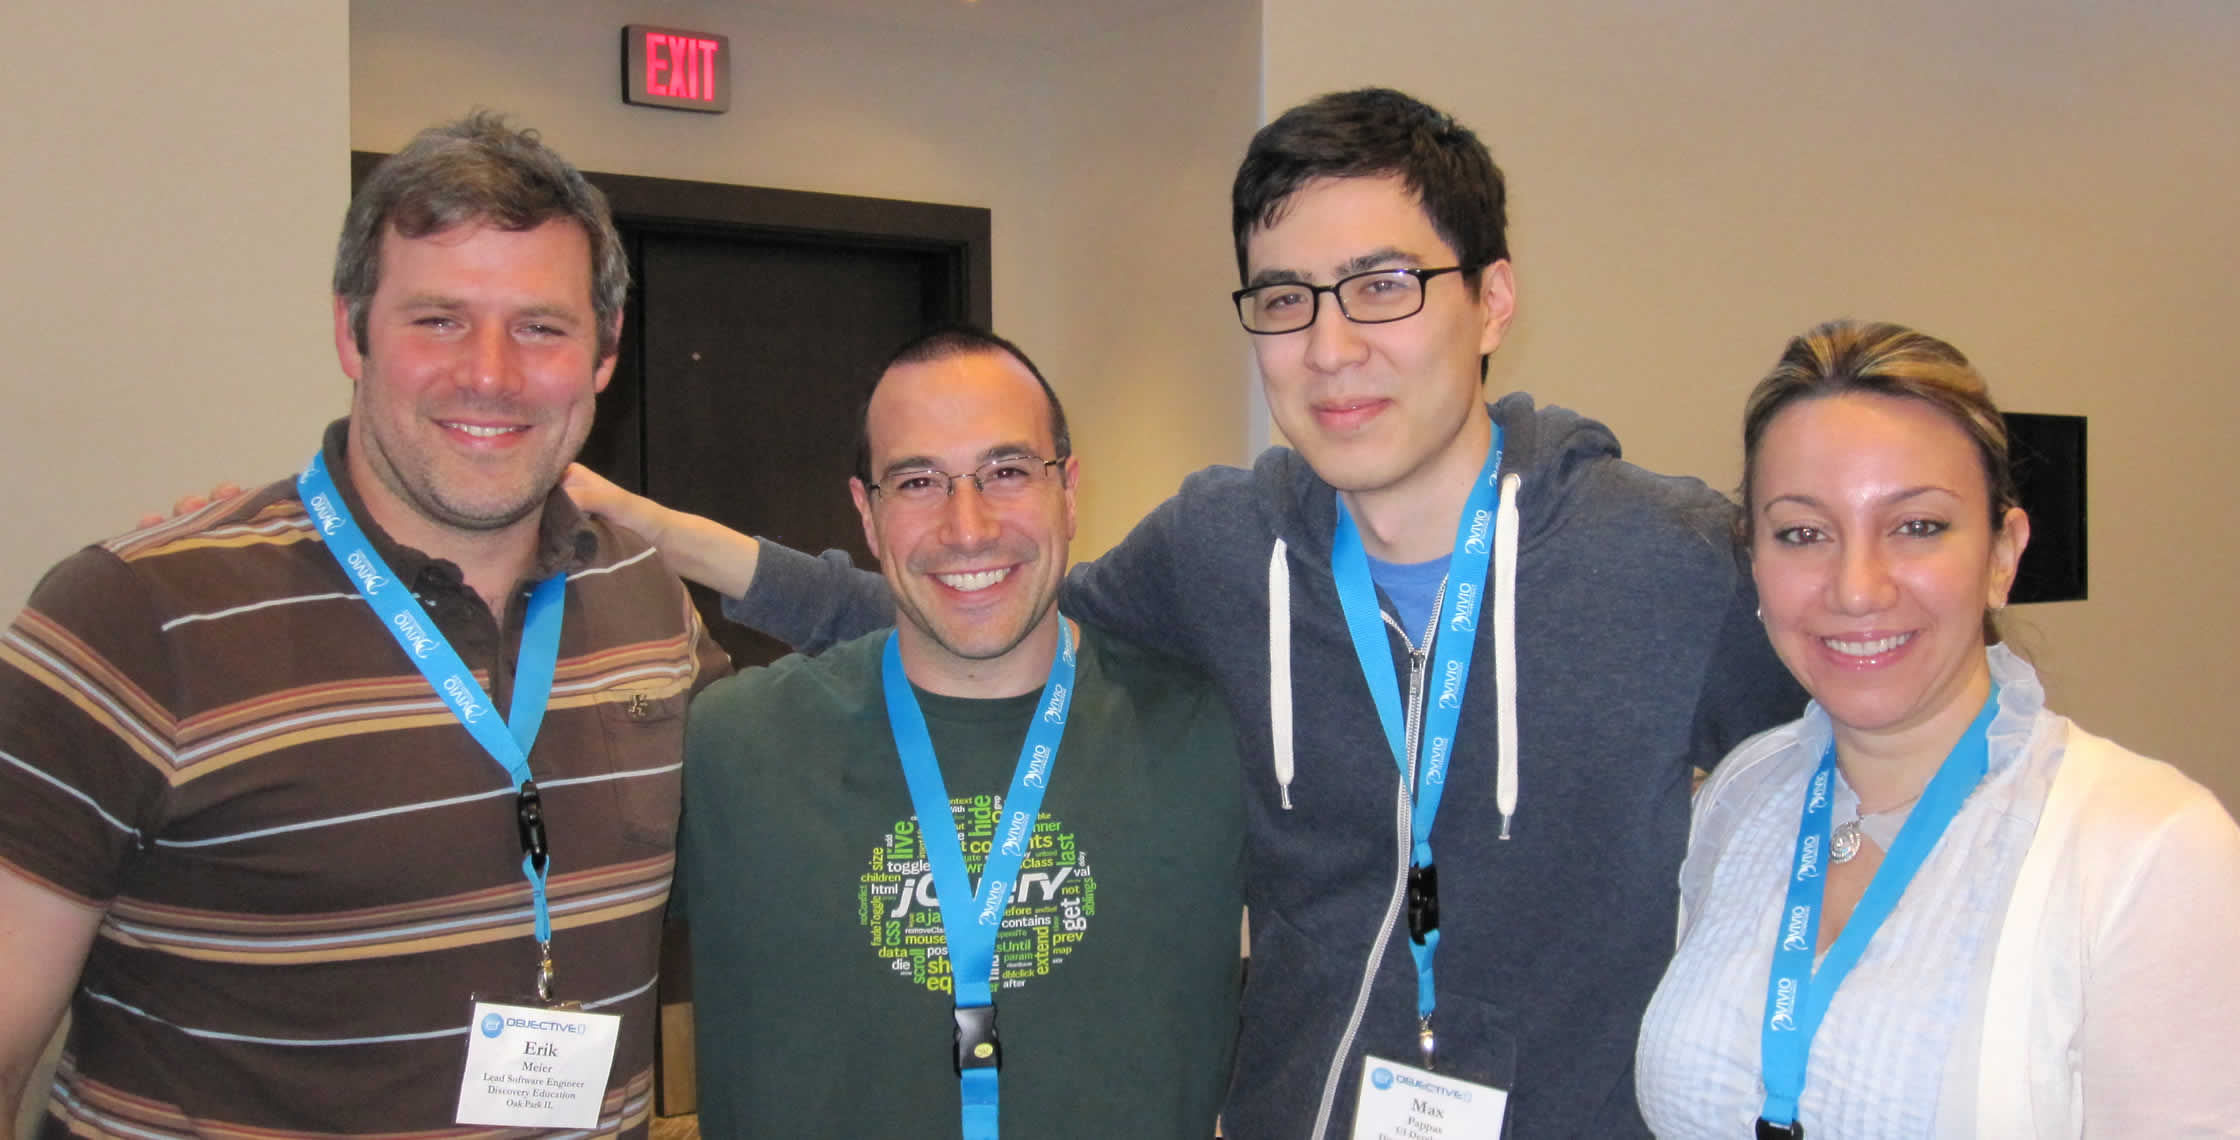 Ben Nadel at cf.Objective() 2013 (Bloomington, MN) with: Erik Meier, Max Pappas, and Reem Jaghlit